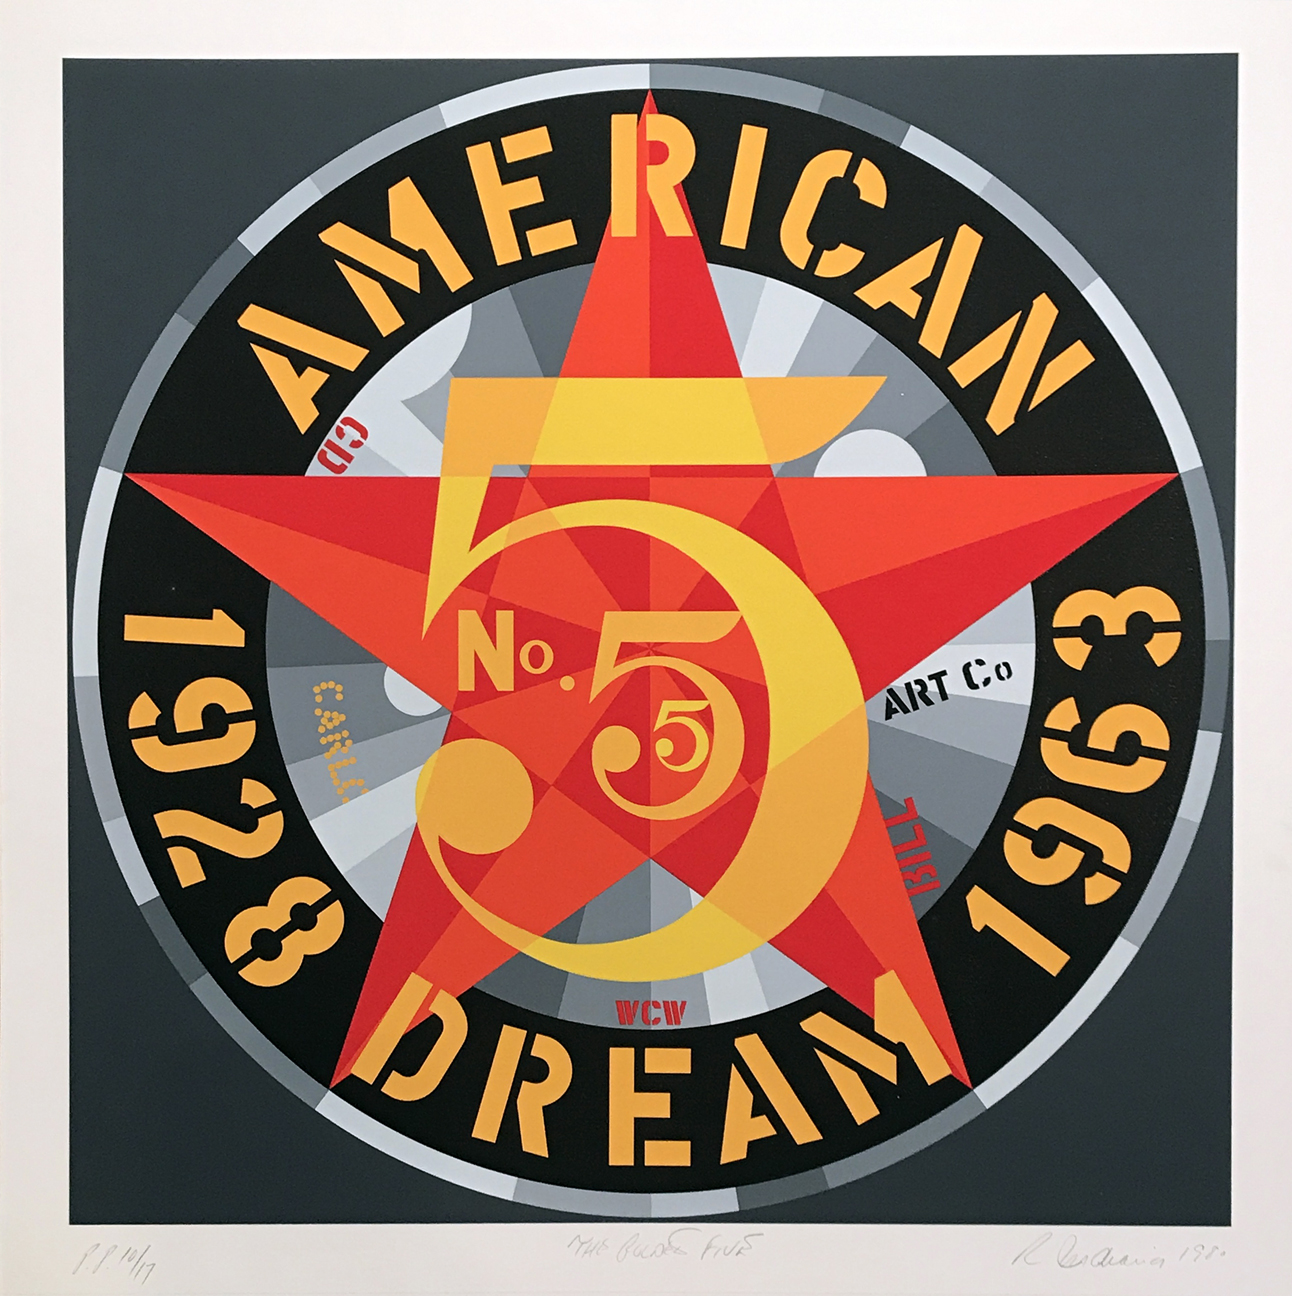 12.Robert Indiana. The Golden Five, 1980. Serigraph in colors on five sheets of Fabriano 100% rag paper, ed. P.P. 10/17, 26 ¾ x 26 ¾ in.